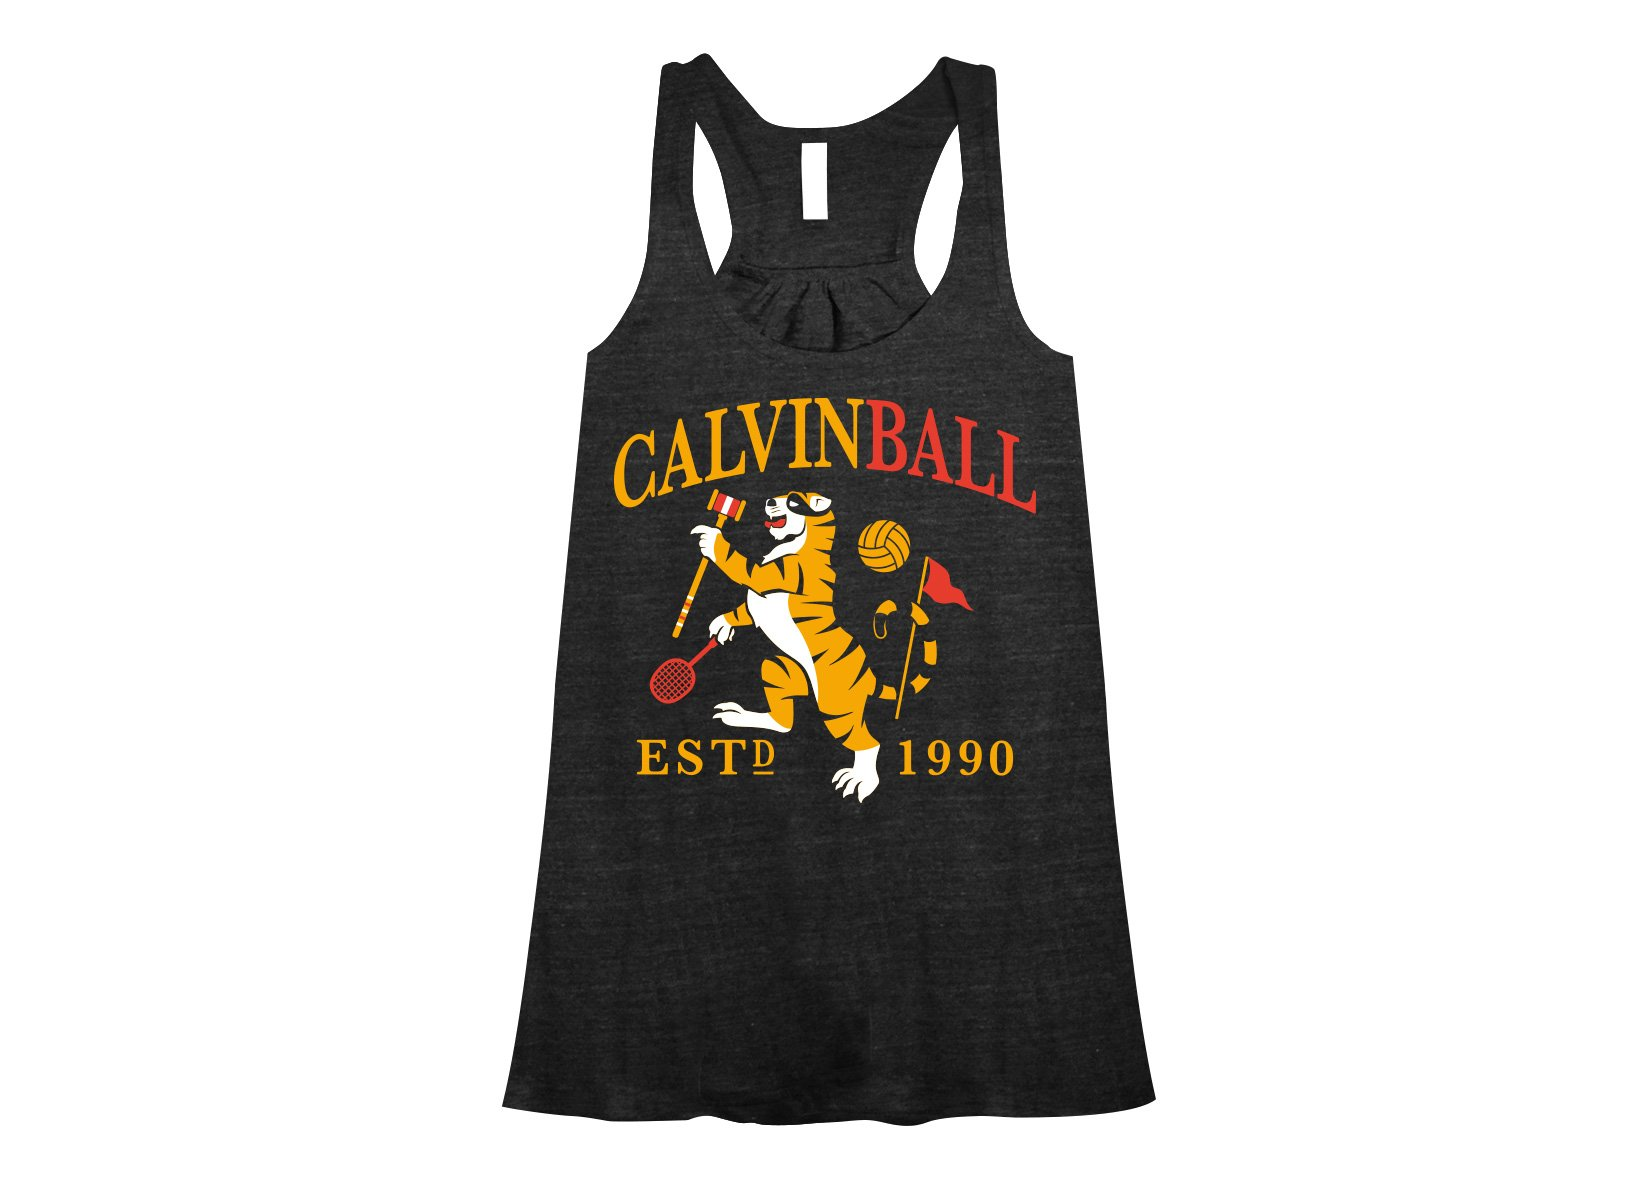 Calvinball on Womens Tanks T-Shirt